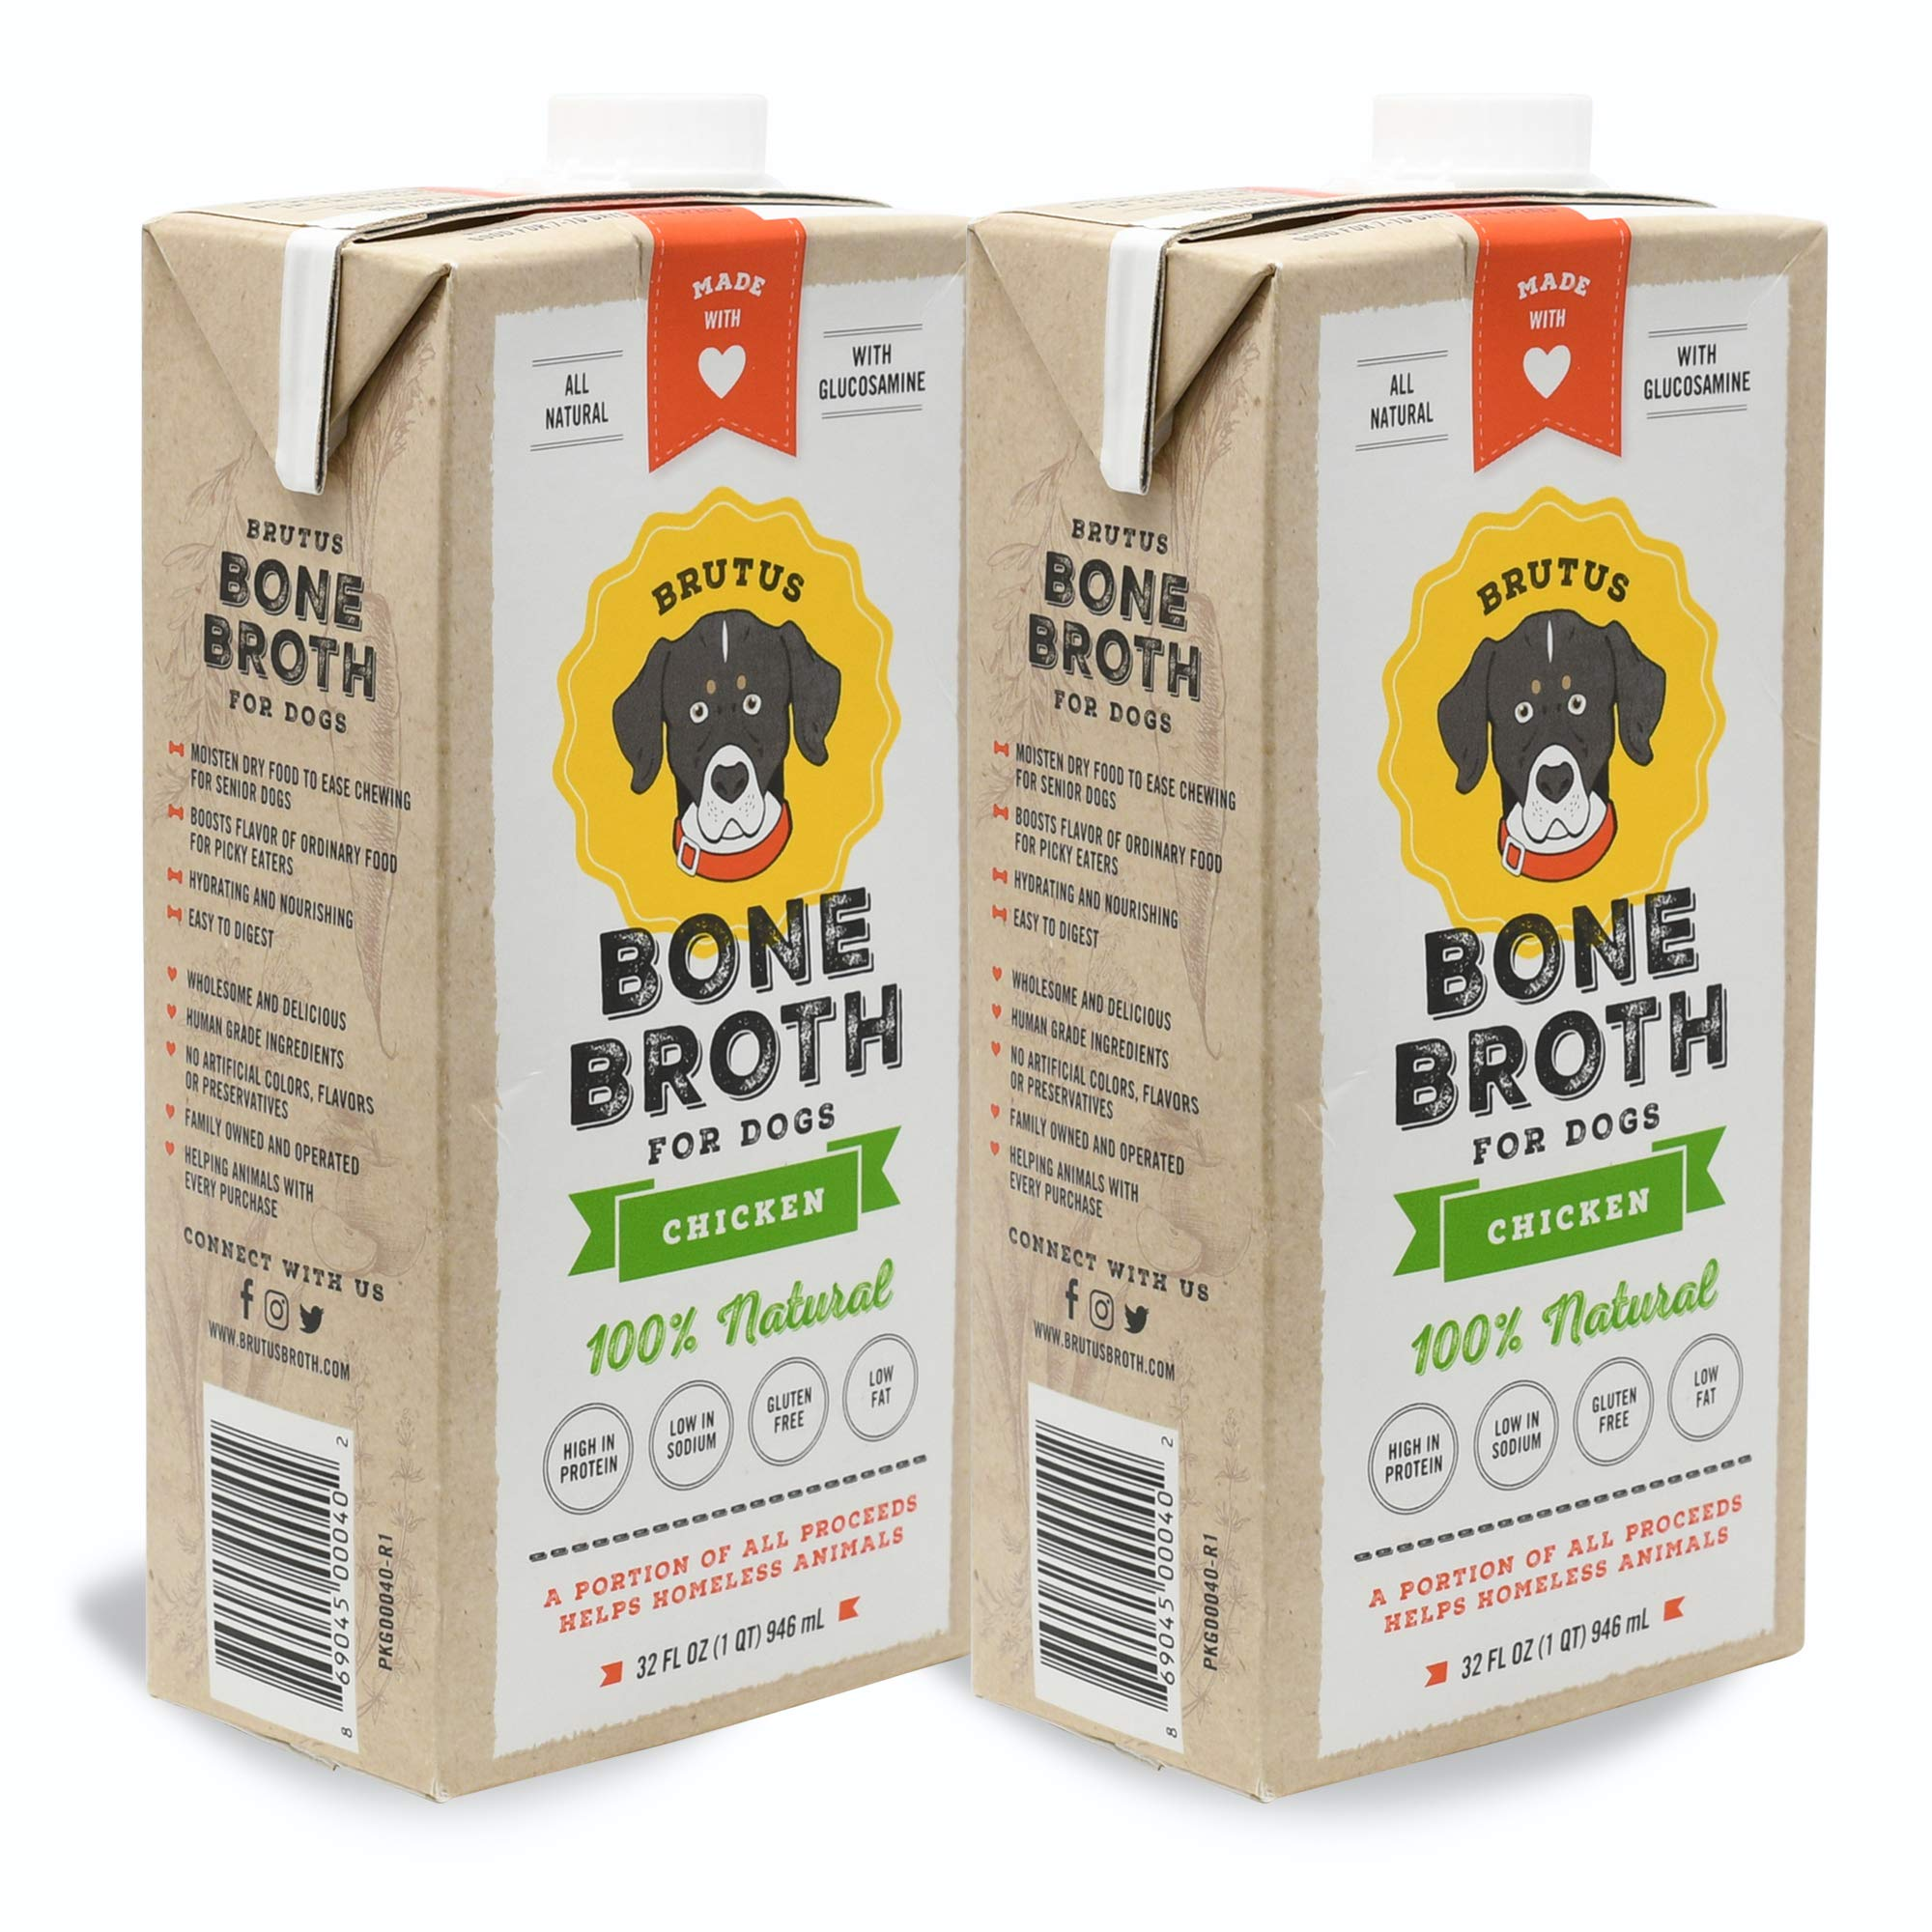 Brutus Bone Broth for Dogs | Chicken 2-Pack (64 oz) Made in USA | Glucosamine & Chondroitin | Healthy Dog Joints | Puppies by Brutus